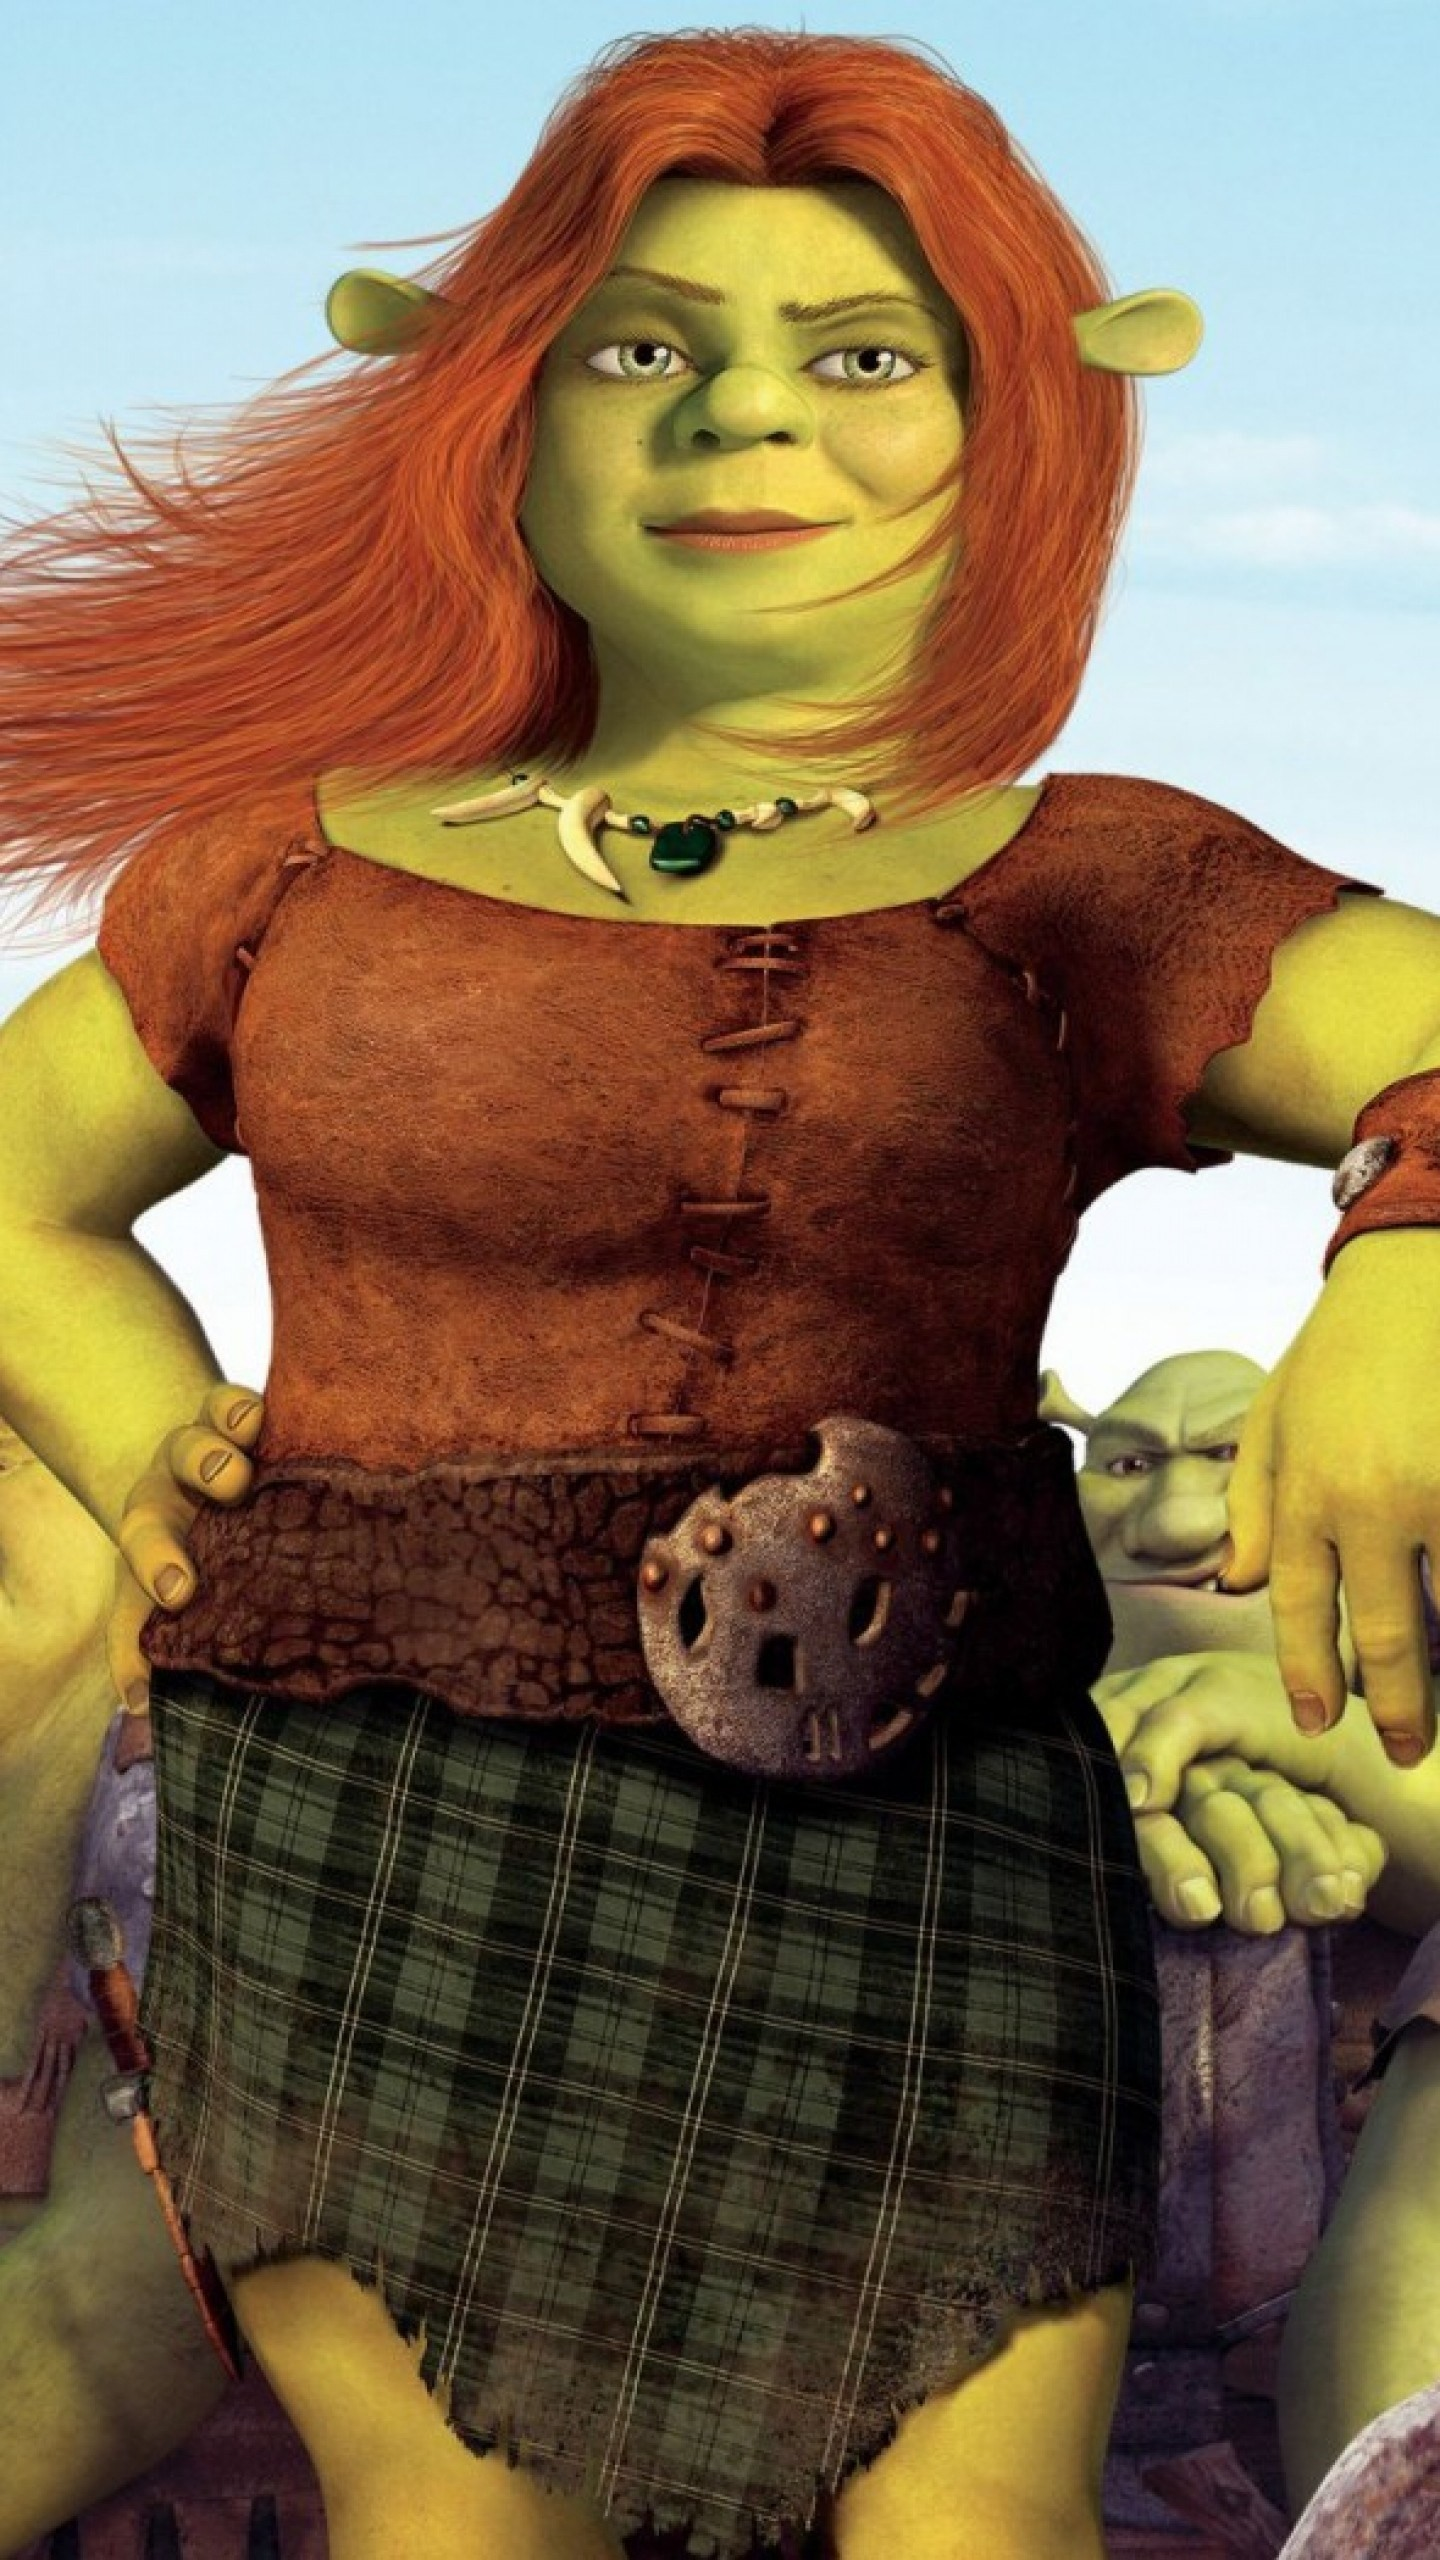 Res: 1440x2560, Fiona Wallpapers Shrek 2 69 Images